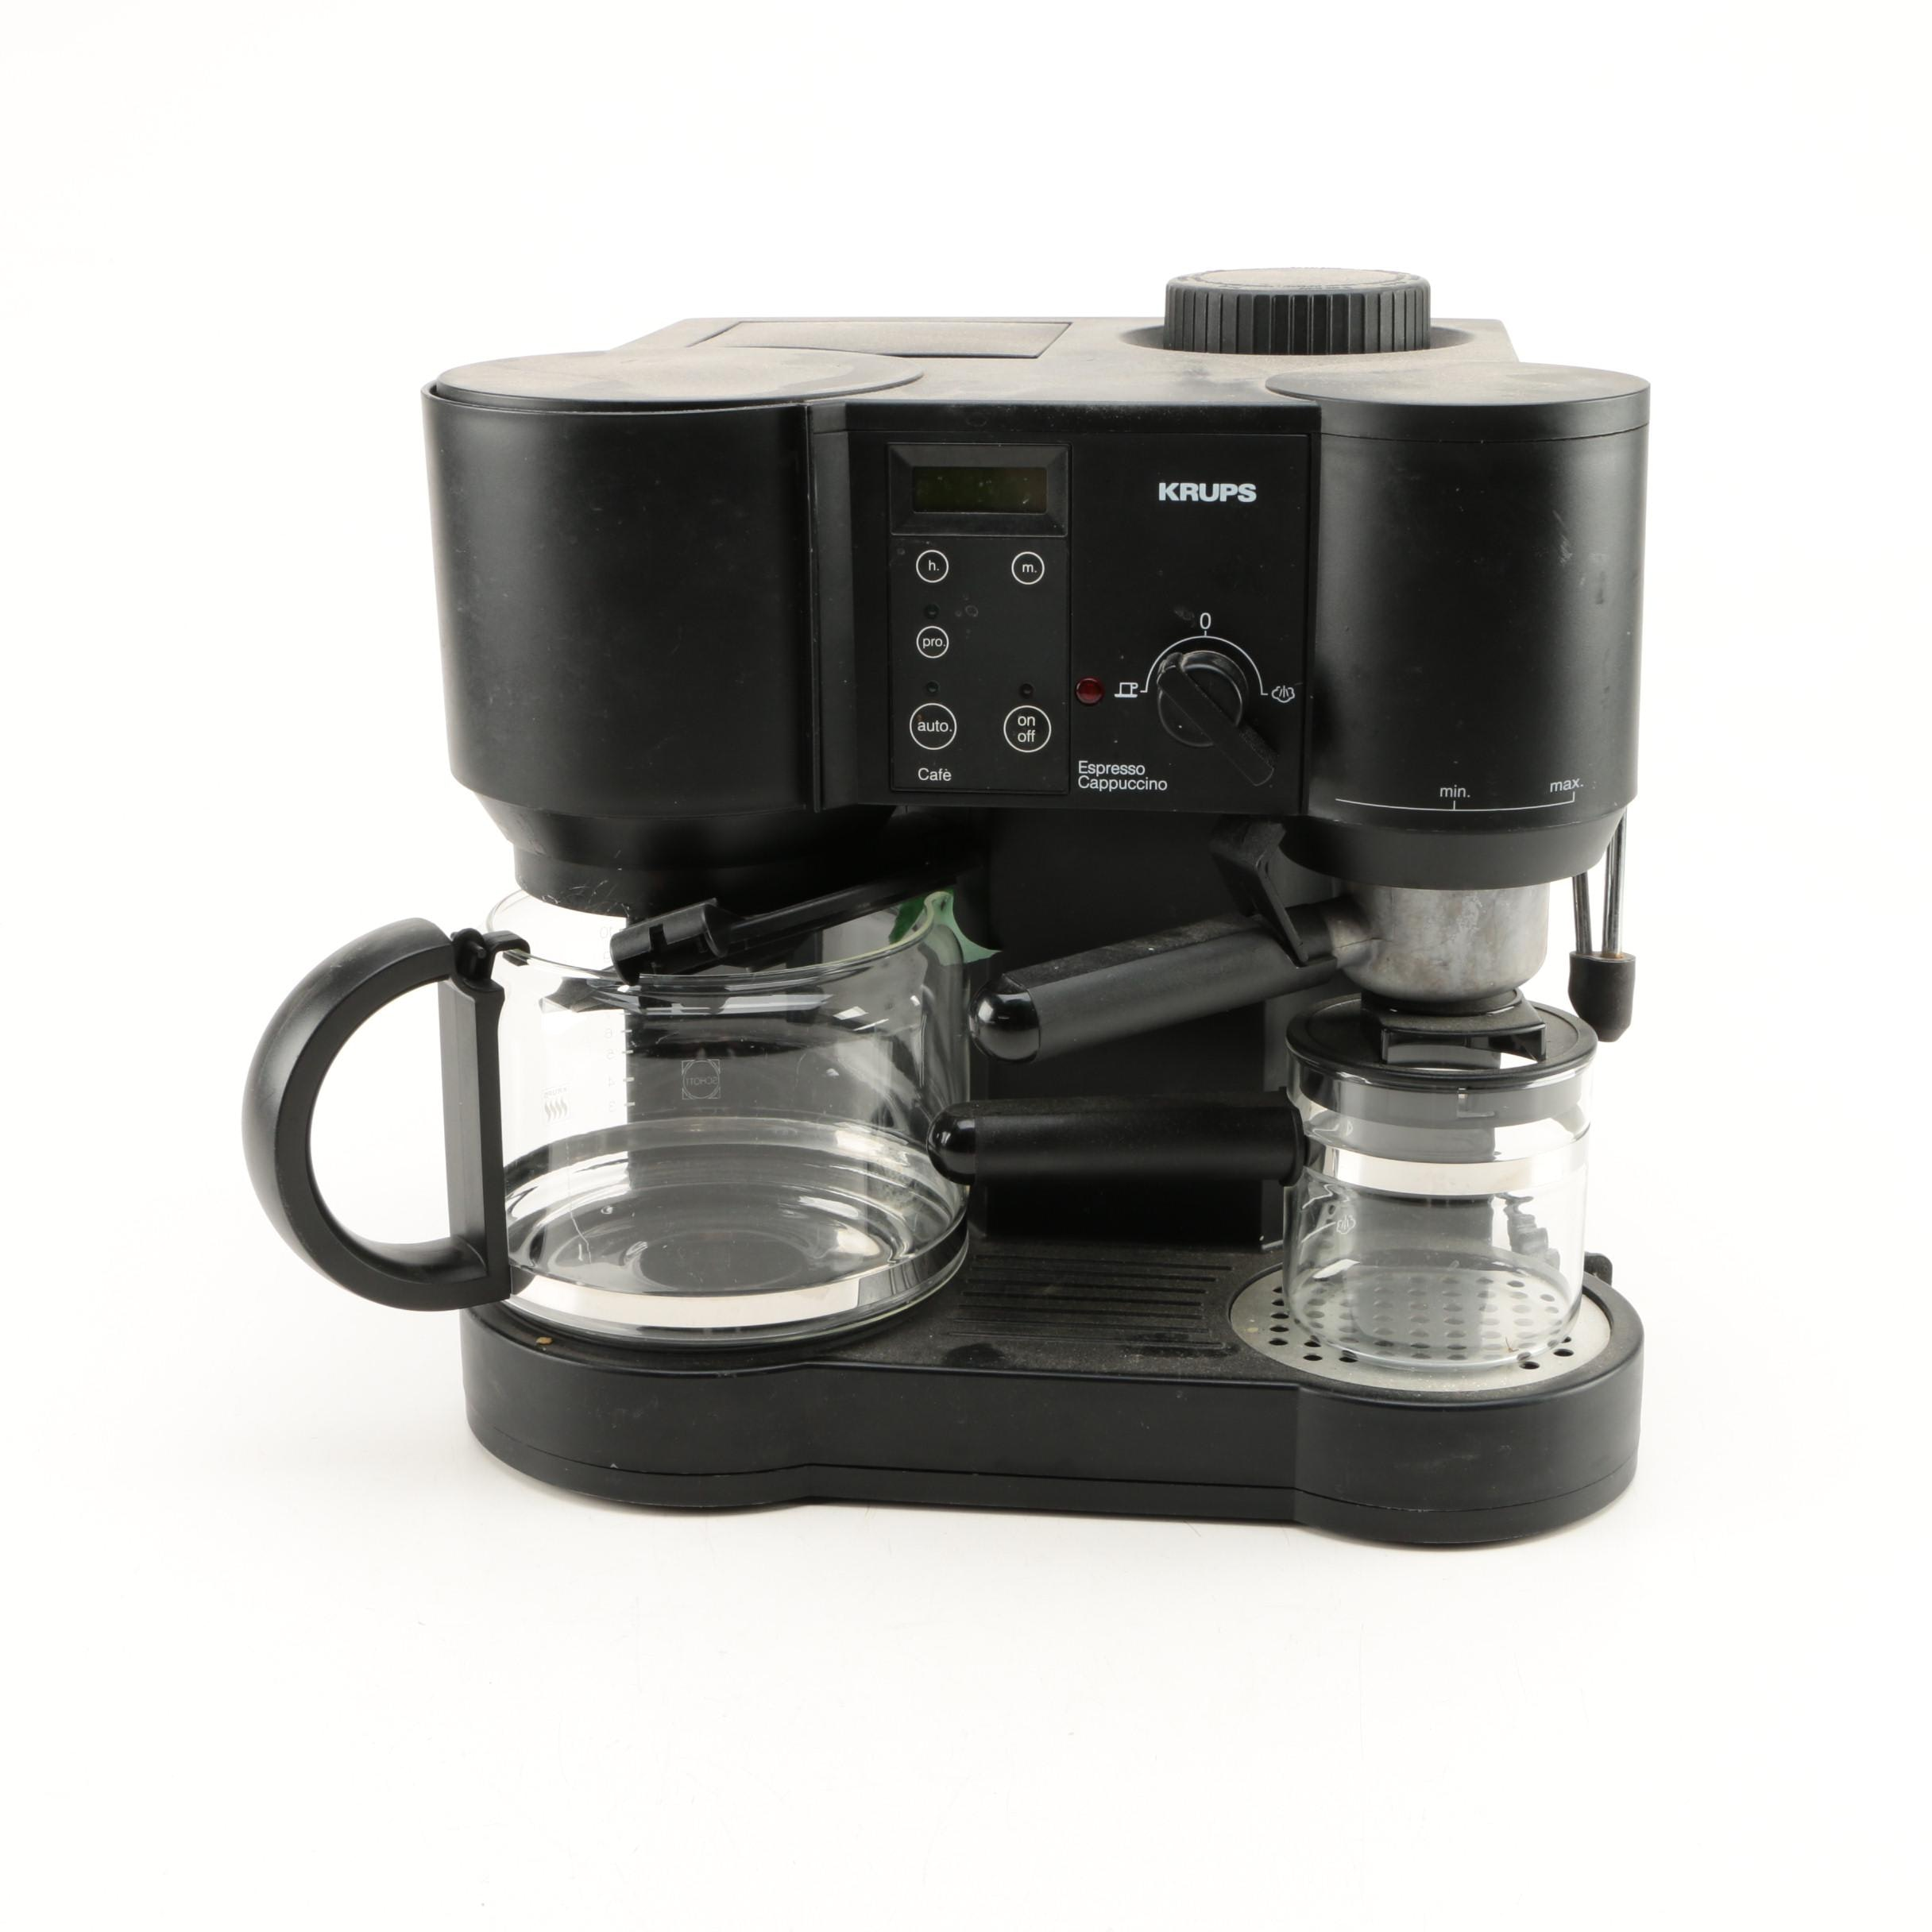 krups espresso maker krups et351050 savoy coffee maker with thermal carafe 12 cup delonghi. Black Bedroom Furniture Sets. Home Design Ideas